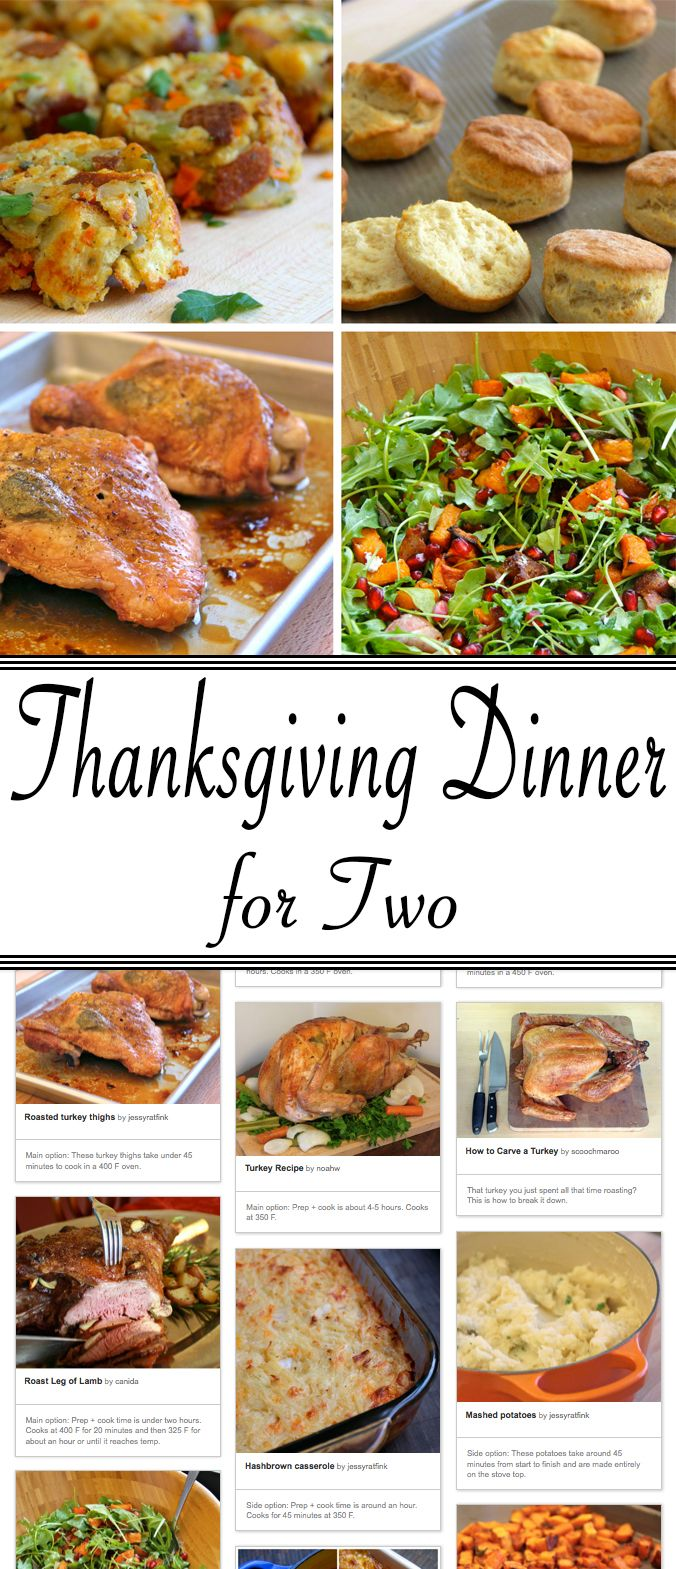 Plan and prepare Thanksgiving dinner for 2!